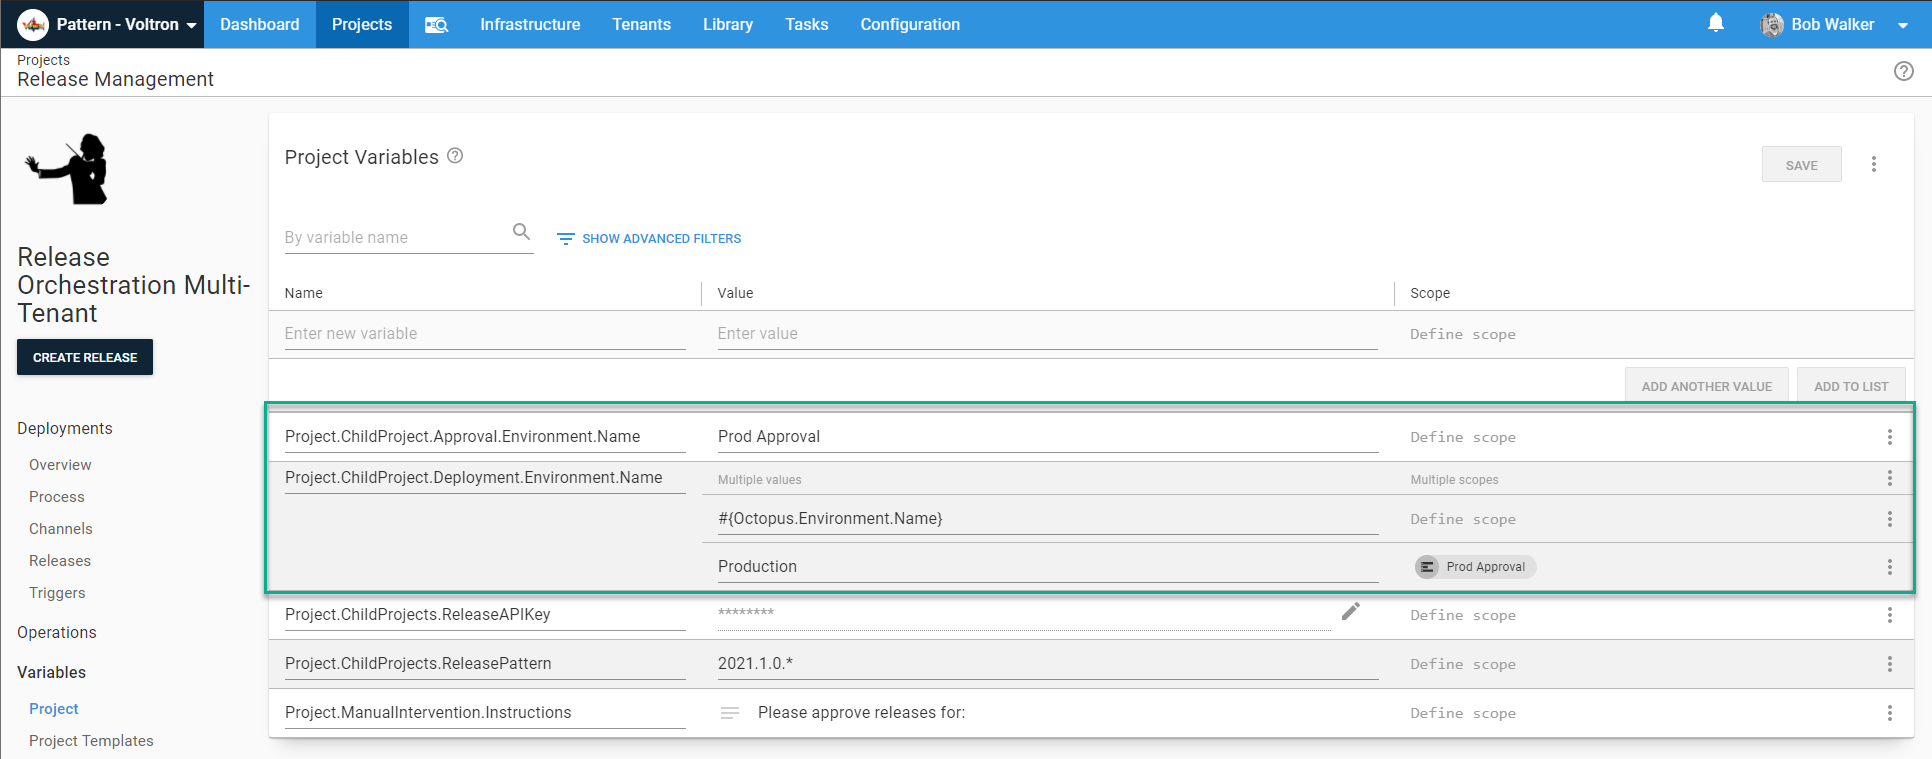 Release management approval environment variables